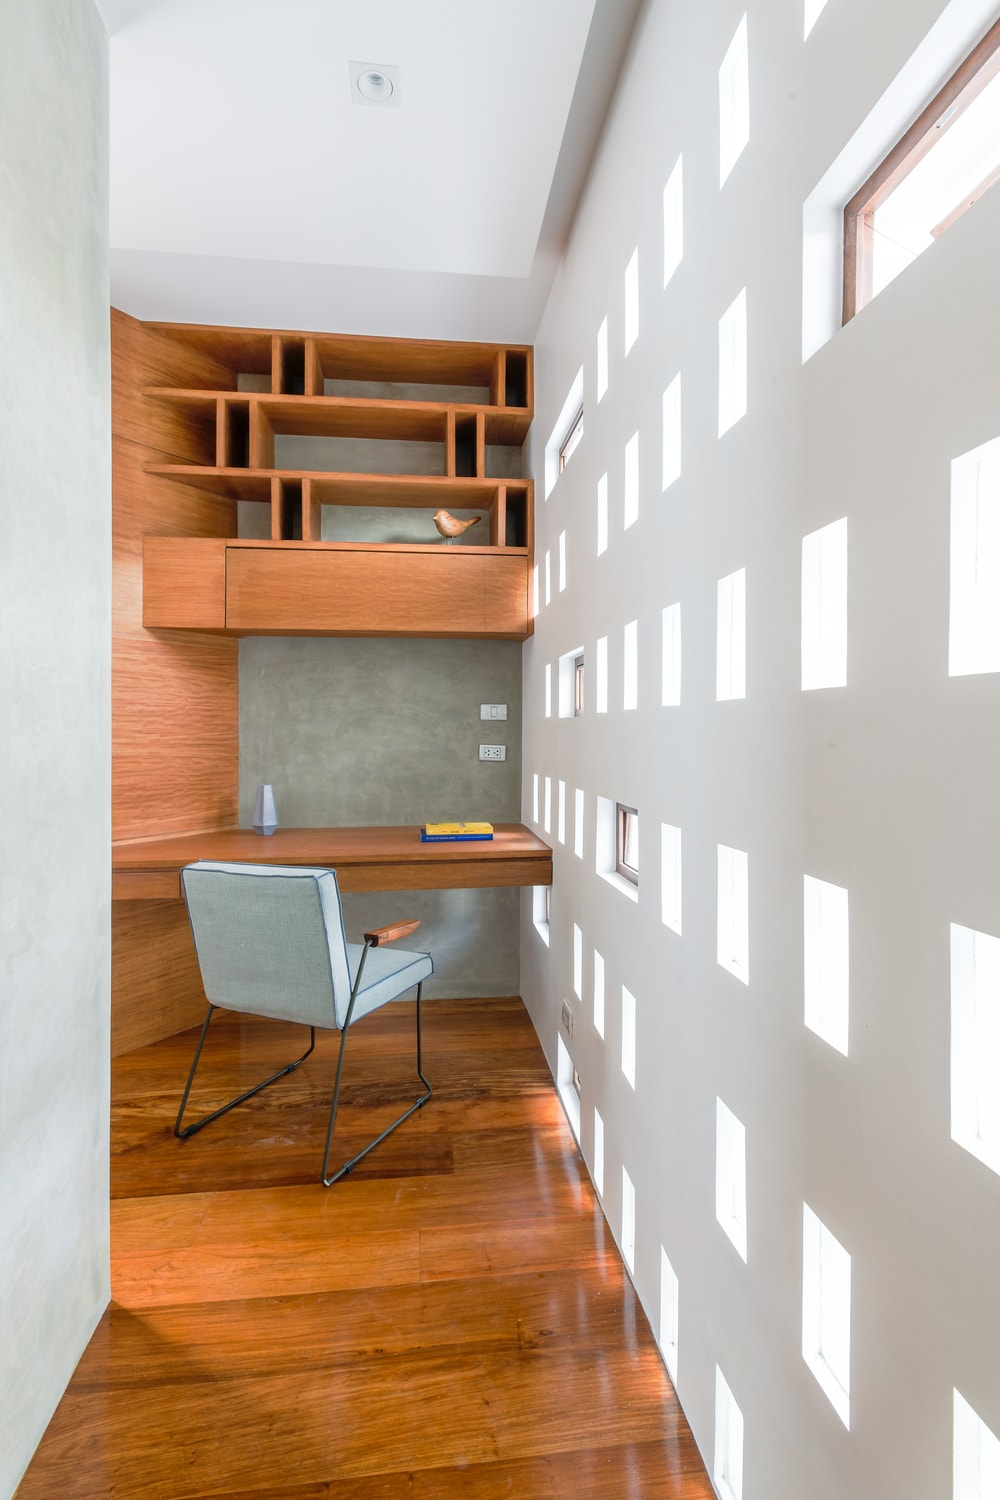 This is a close look at the study area of the house that has built in wooden wooden structures as desk and shelves above.